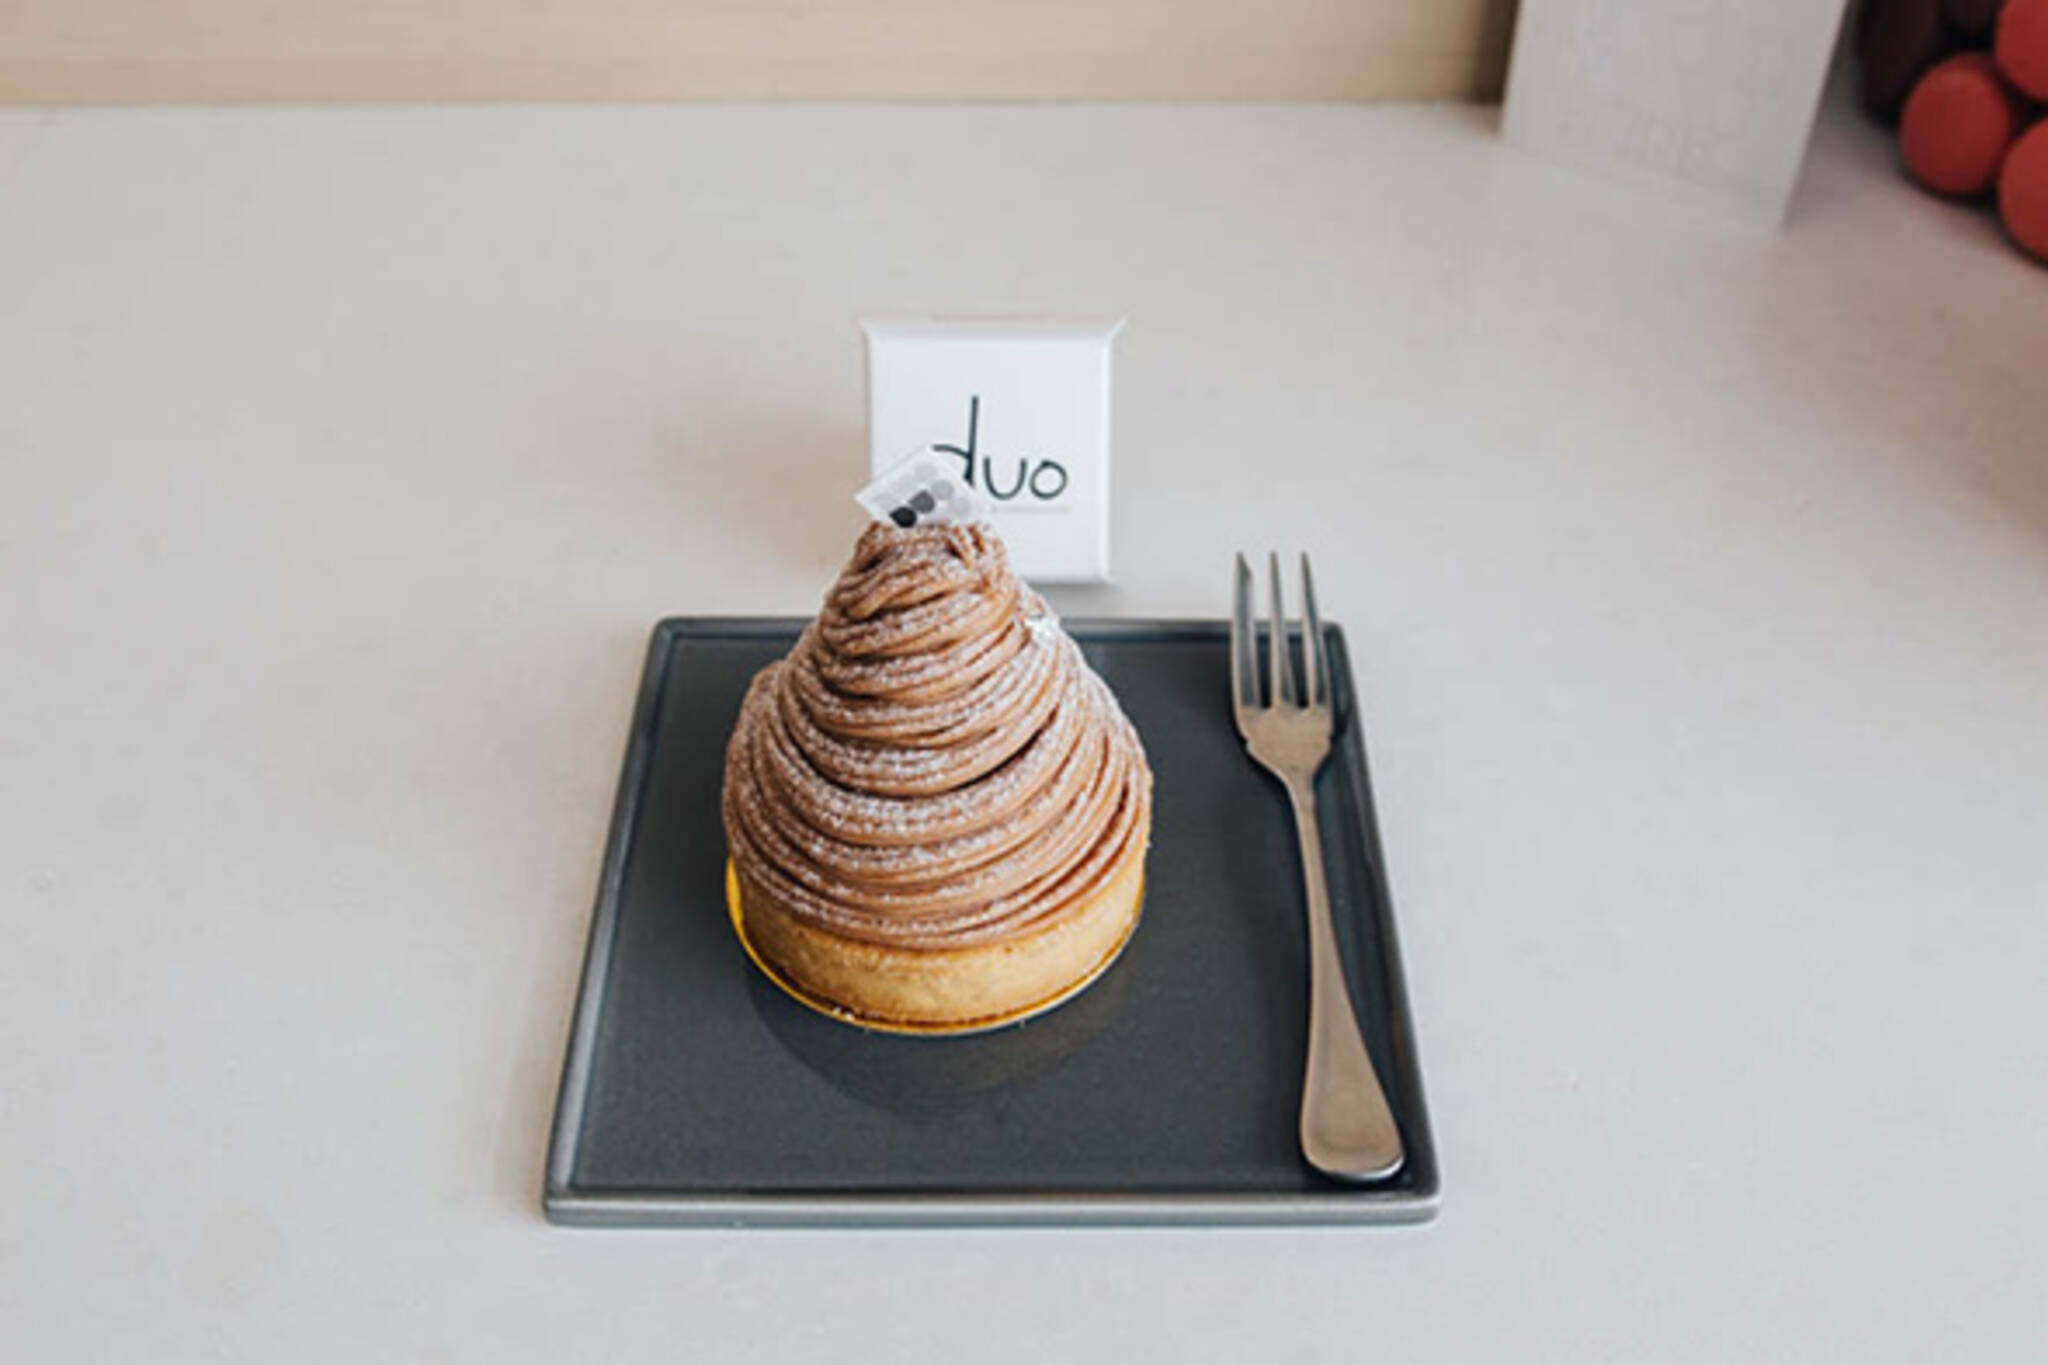 Duo Patisserie